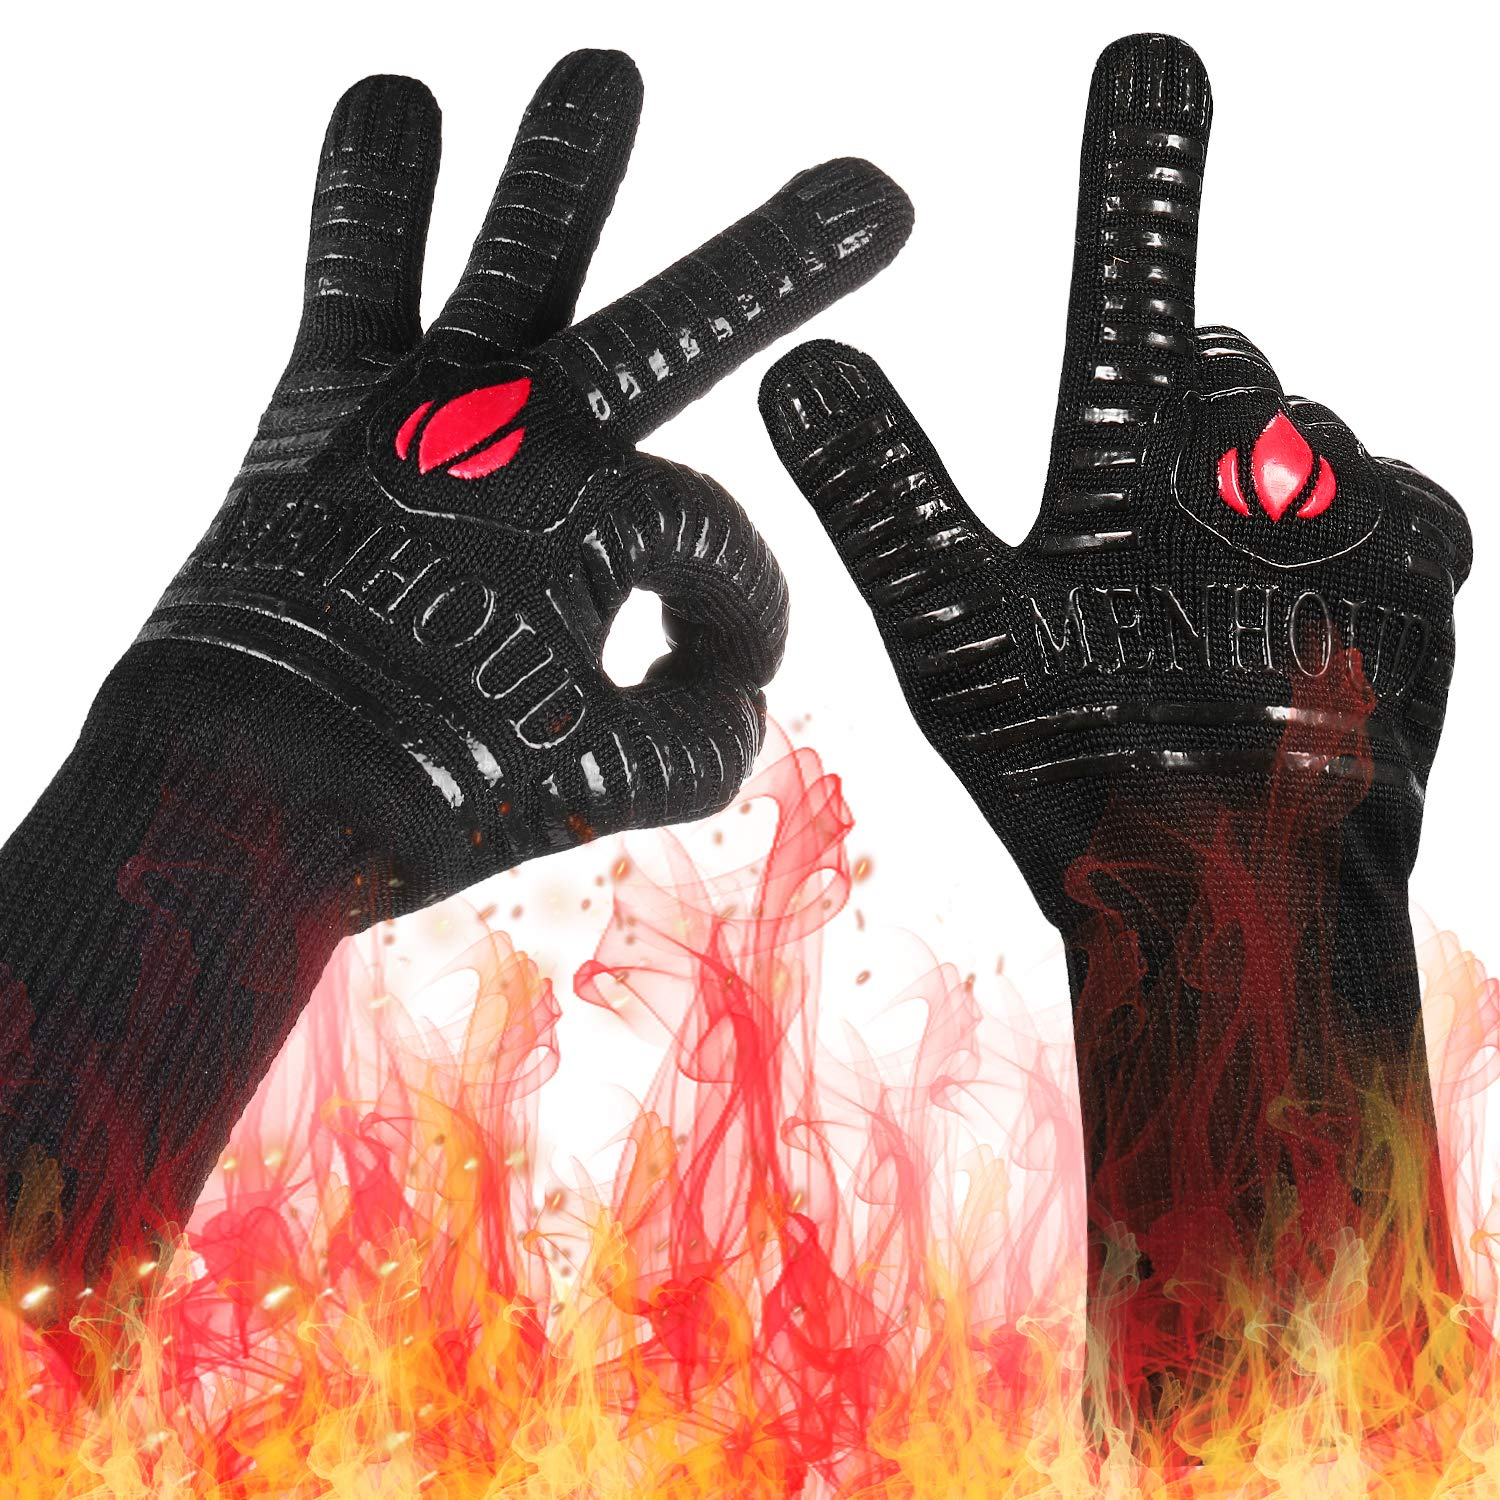 1472℉ Extreme Heat Resistant BBQ Gloves, Food Grade Kitchen Oven Gloves - Flexible Hot Grilling Gloves with Cut Resistant, Silicone Non-Slip Cooking Gloves for Grilling, Welding, Cutting (1 Pair) by Landteek